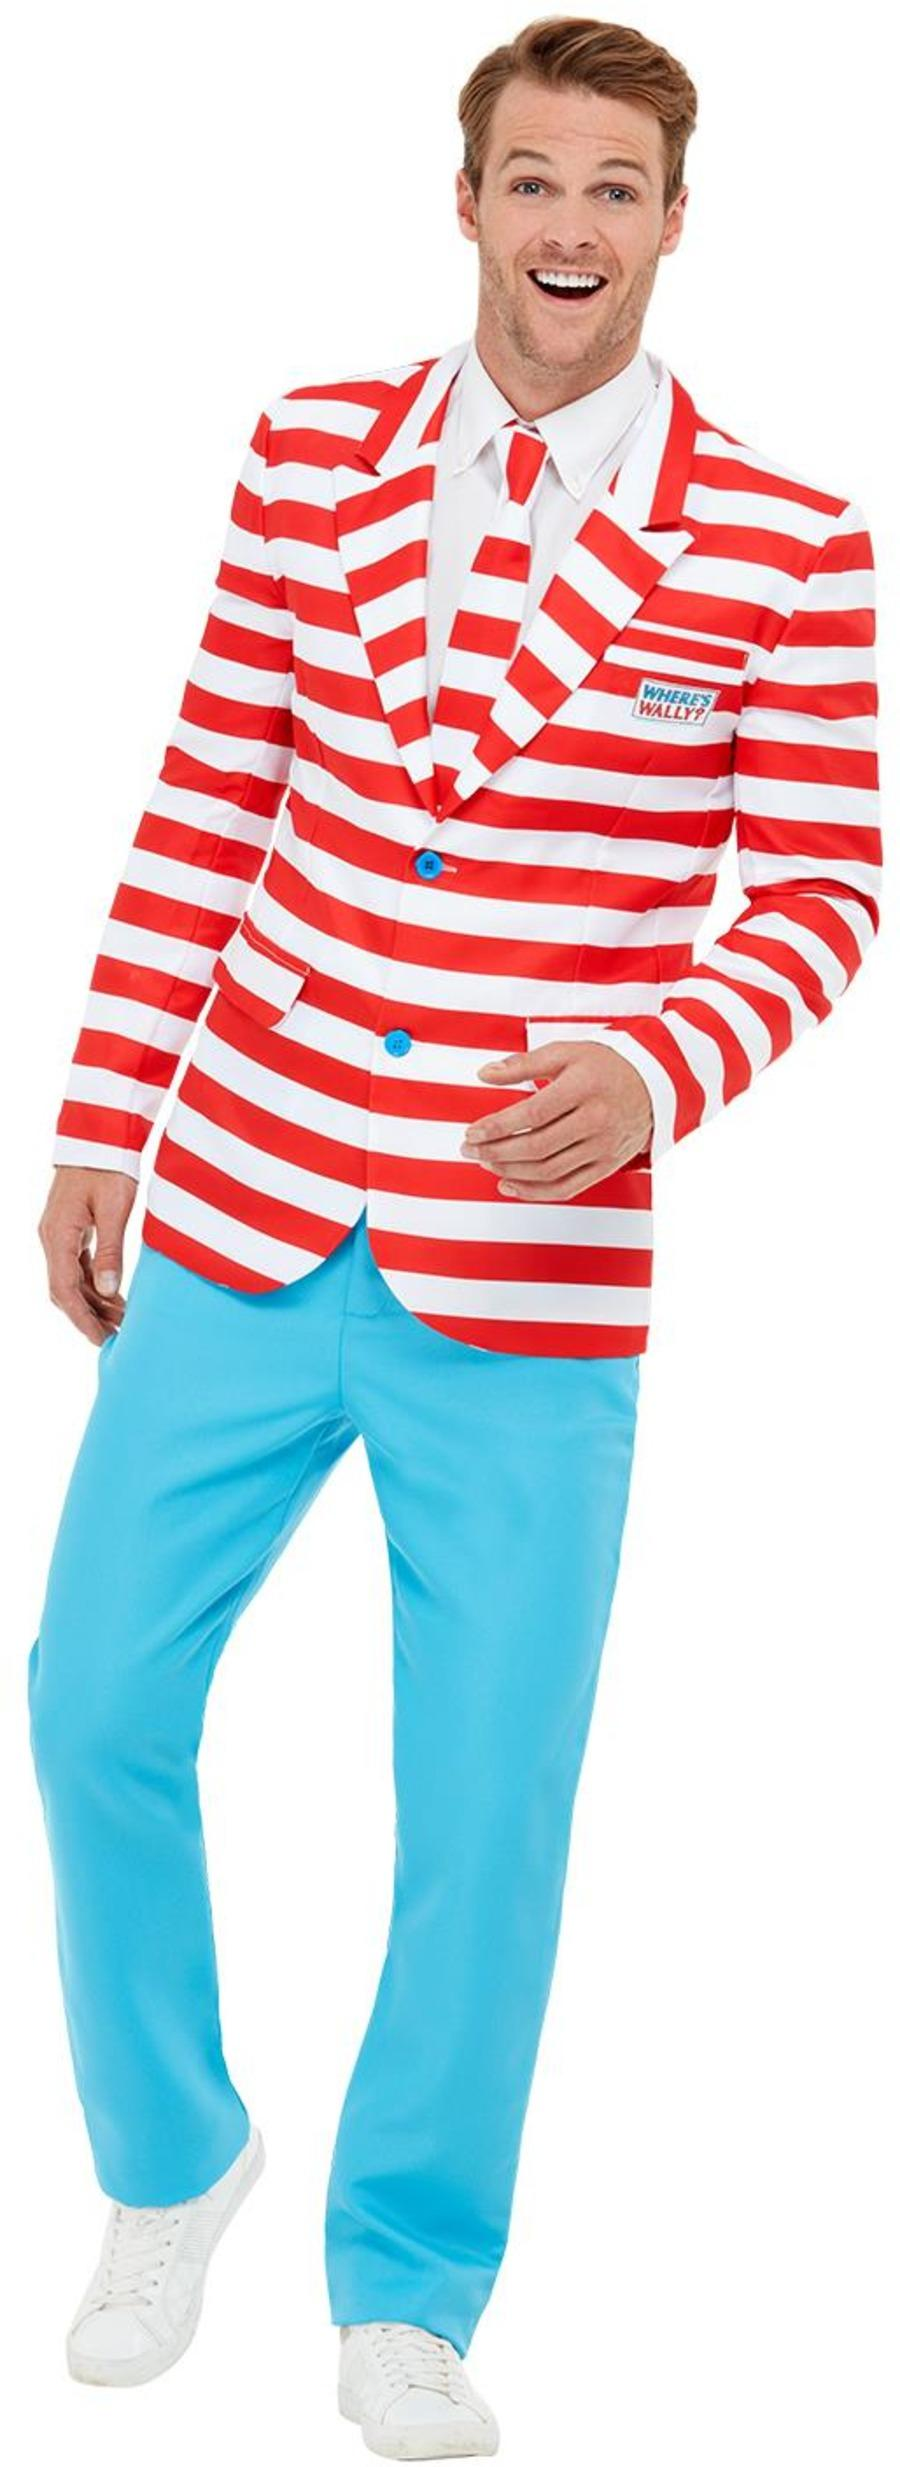 Where's Wally? Stand Out Suit Officially licensed.